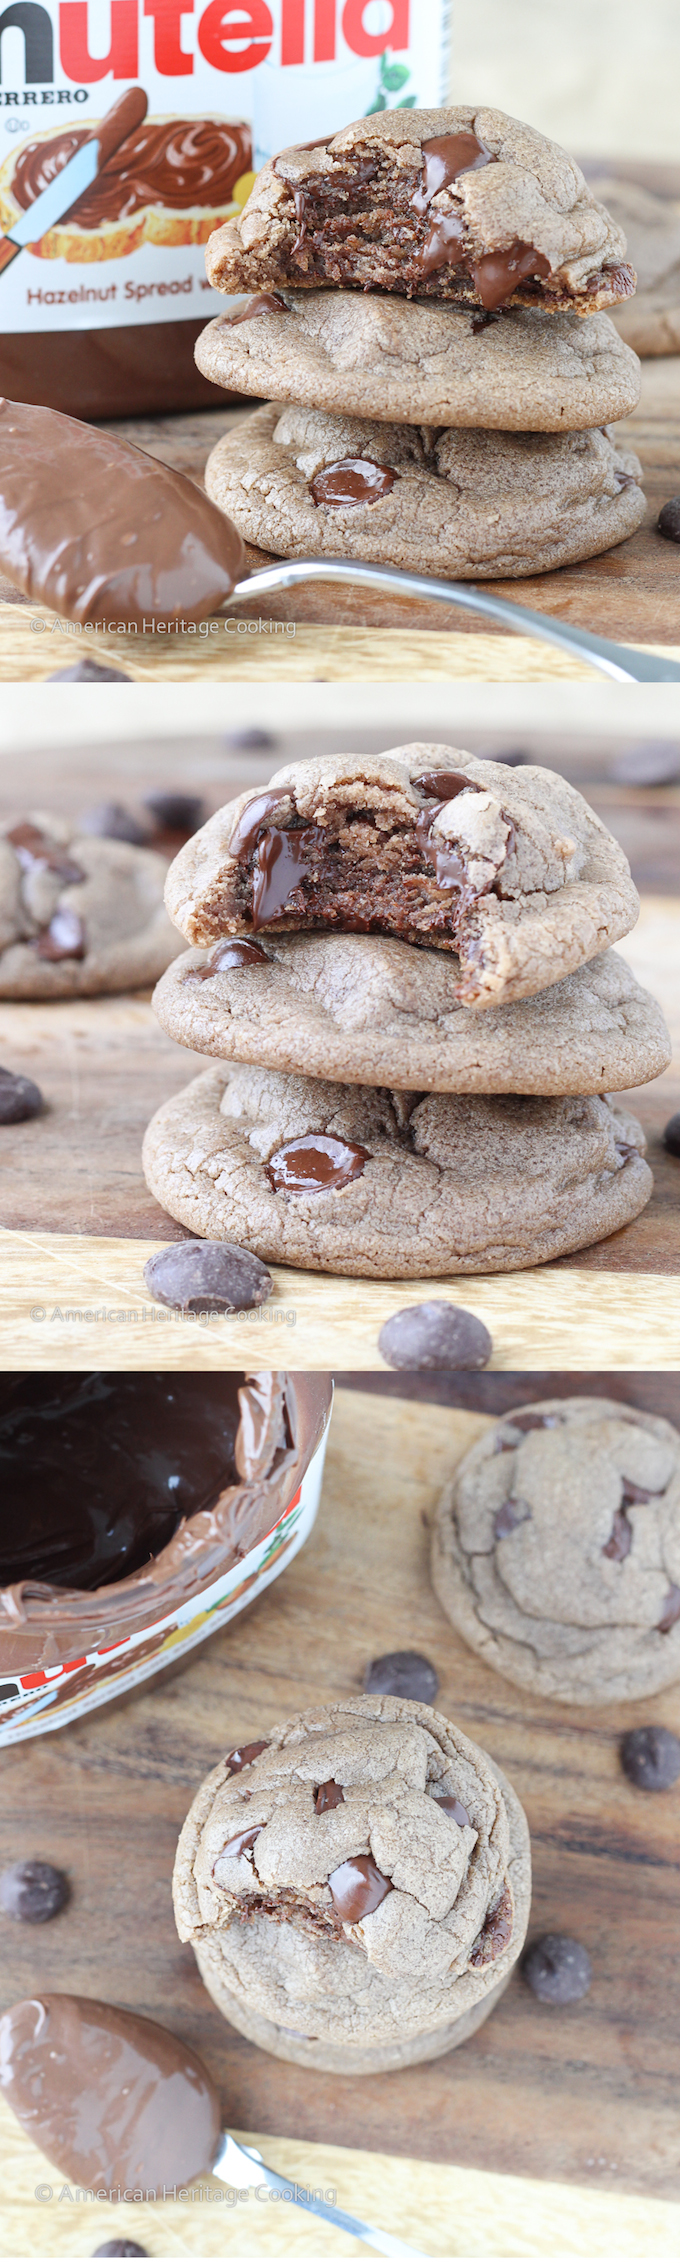 Soft-Nutella-Chocolate-Chip-Cookies-Collage